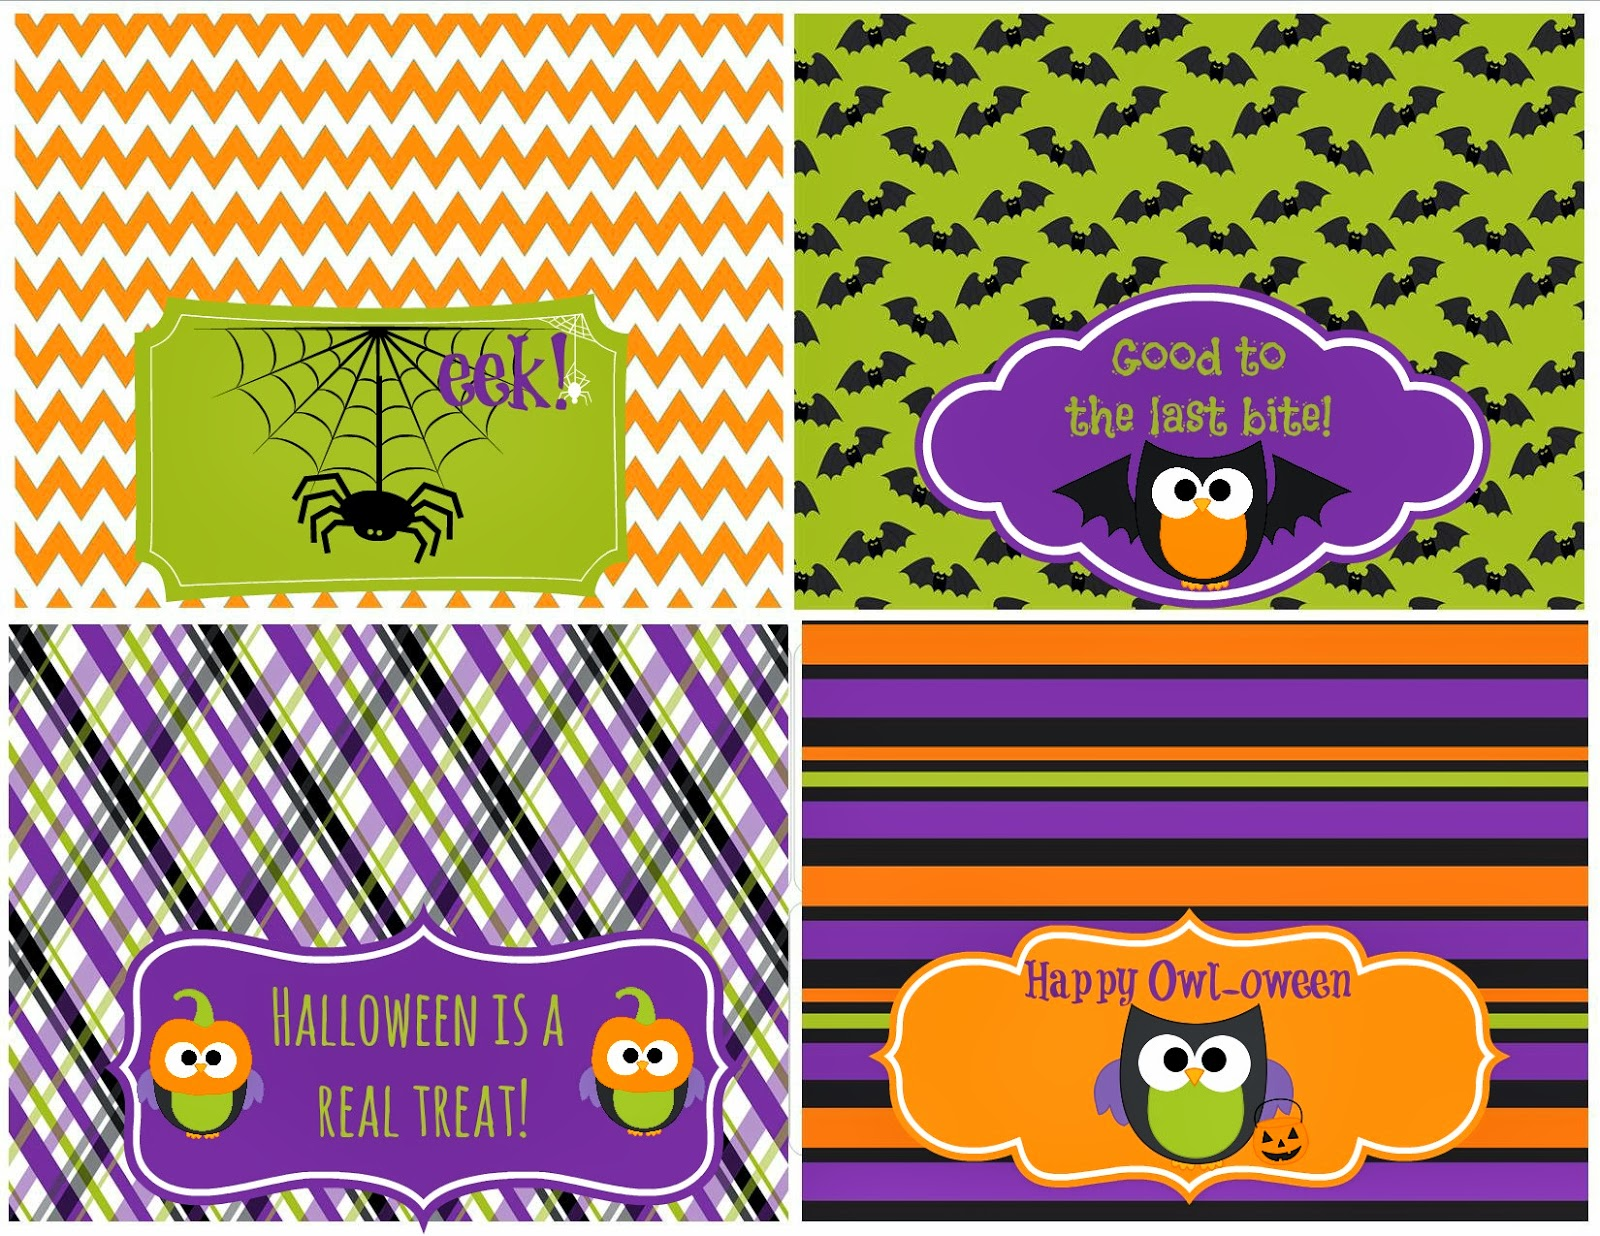 Halloween Party Printables - Second Chance To Dream